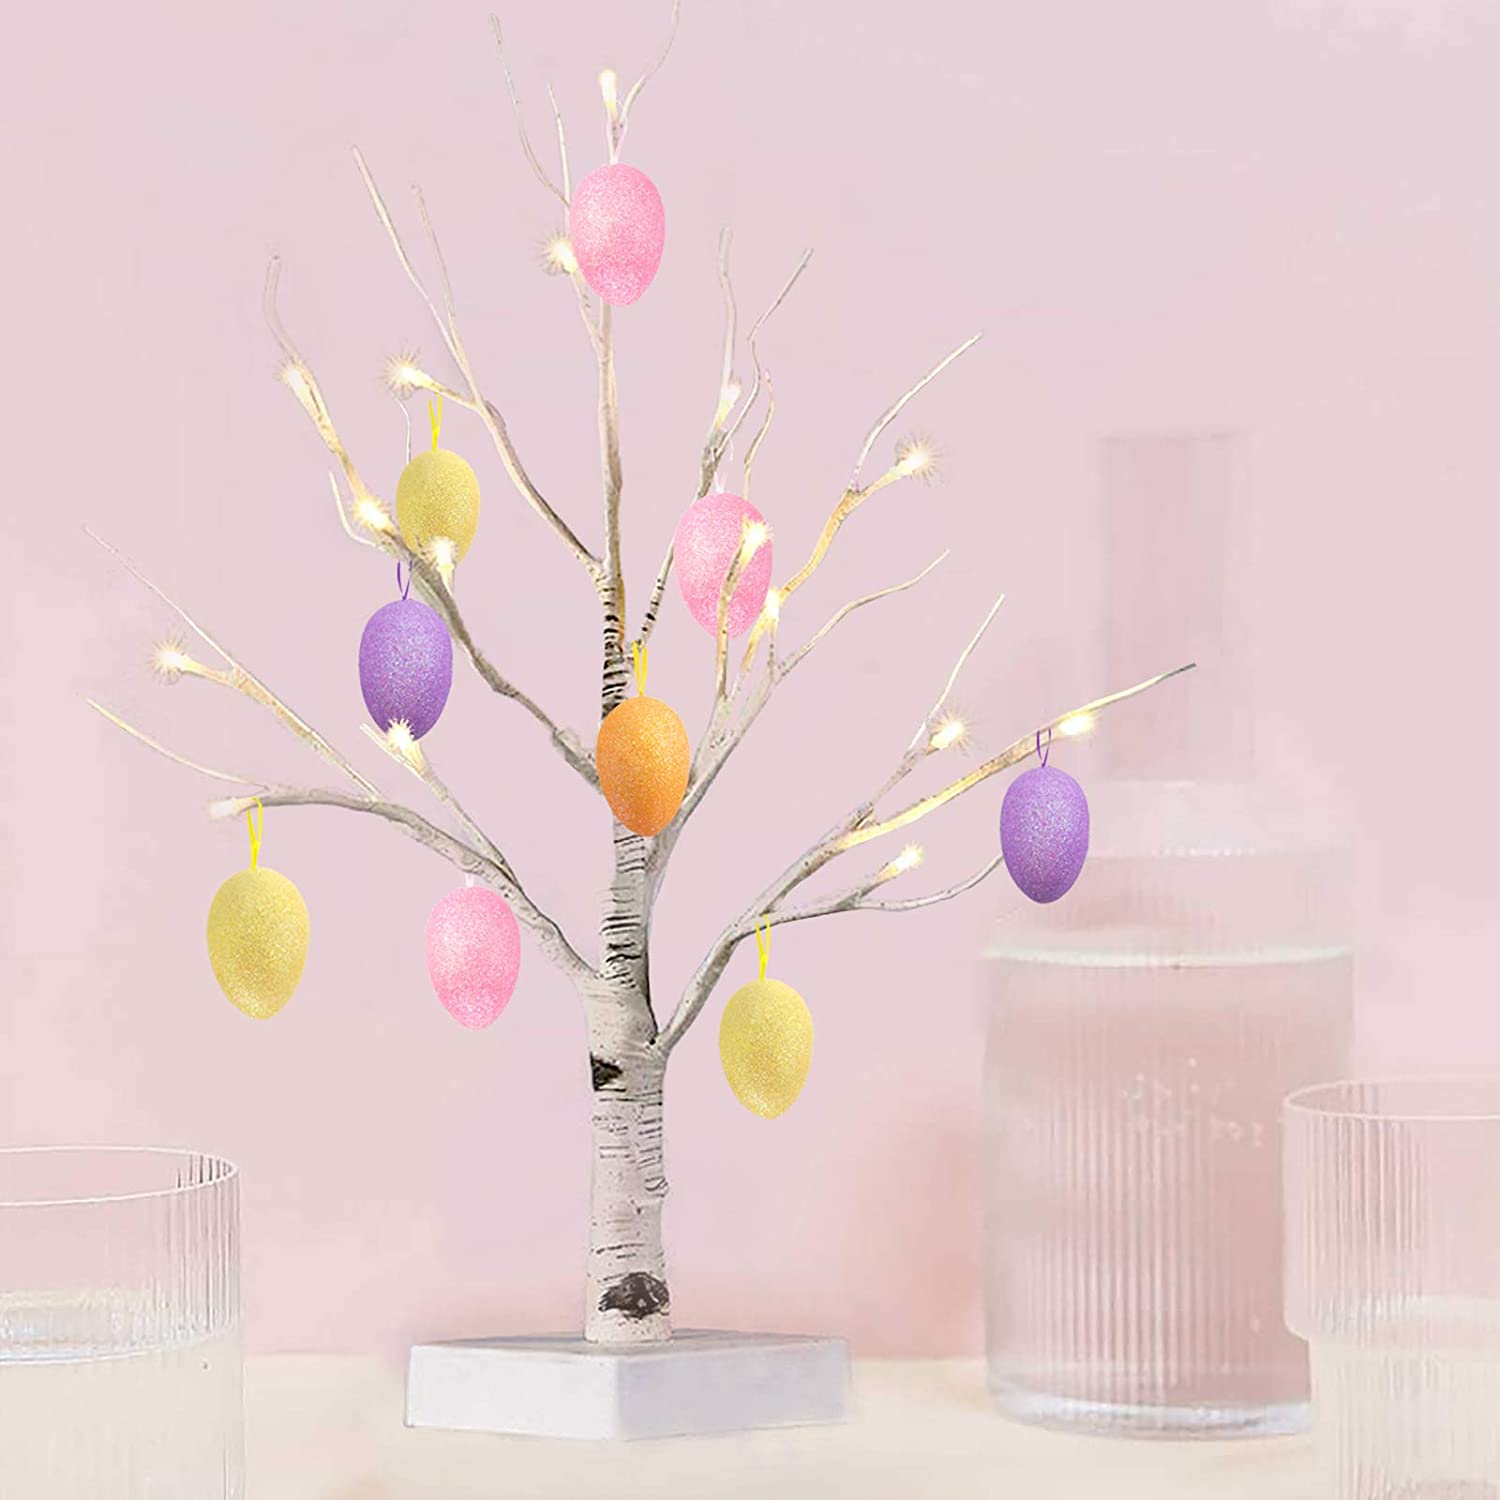 Easter Decorations Egg Tree 24inch White Lighted Birch Tree with Set of 12 Hanging Easter Glitter Egg Ornaments for Party Birthday Home Decor